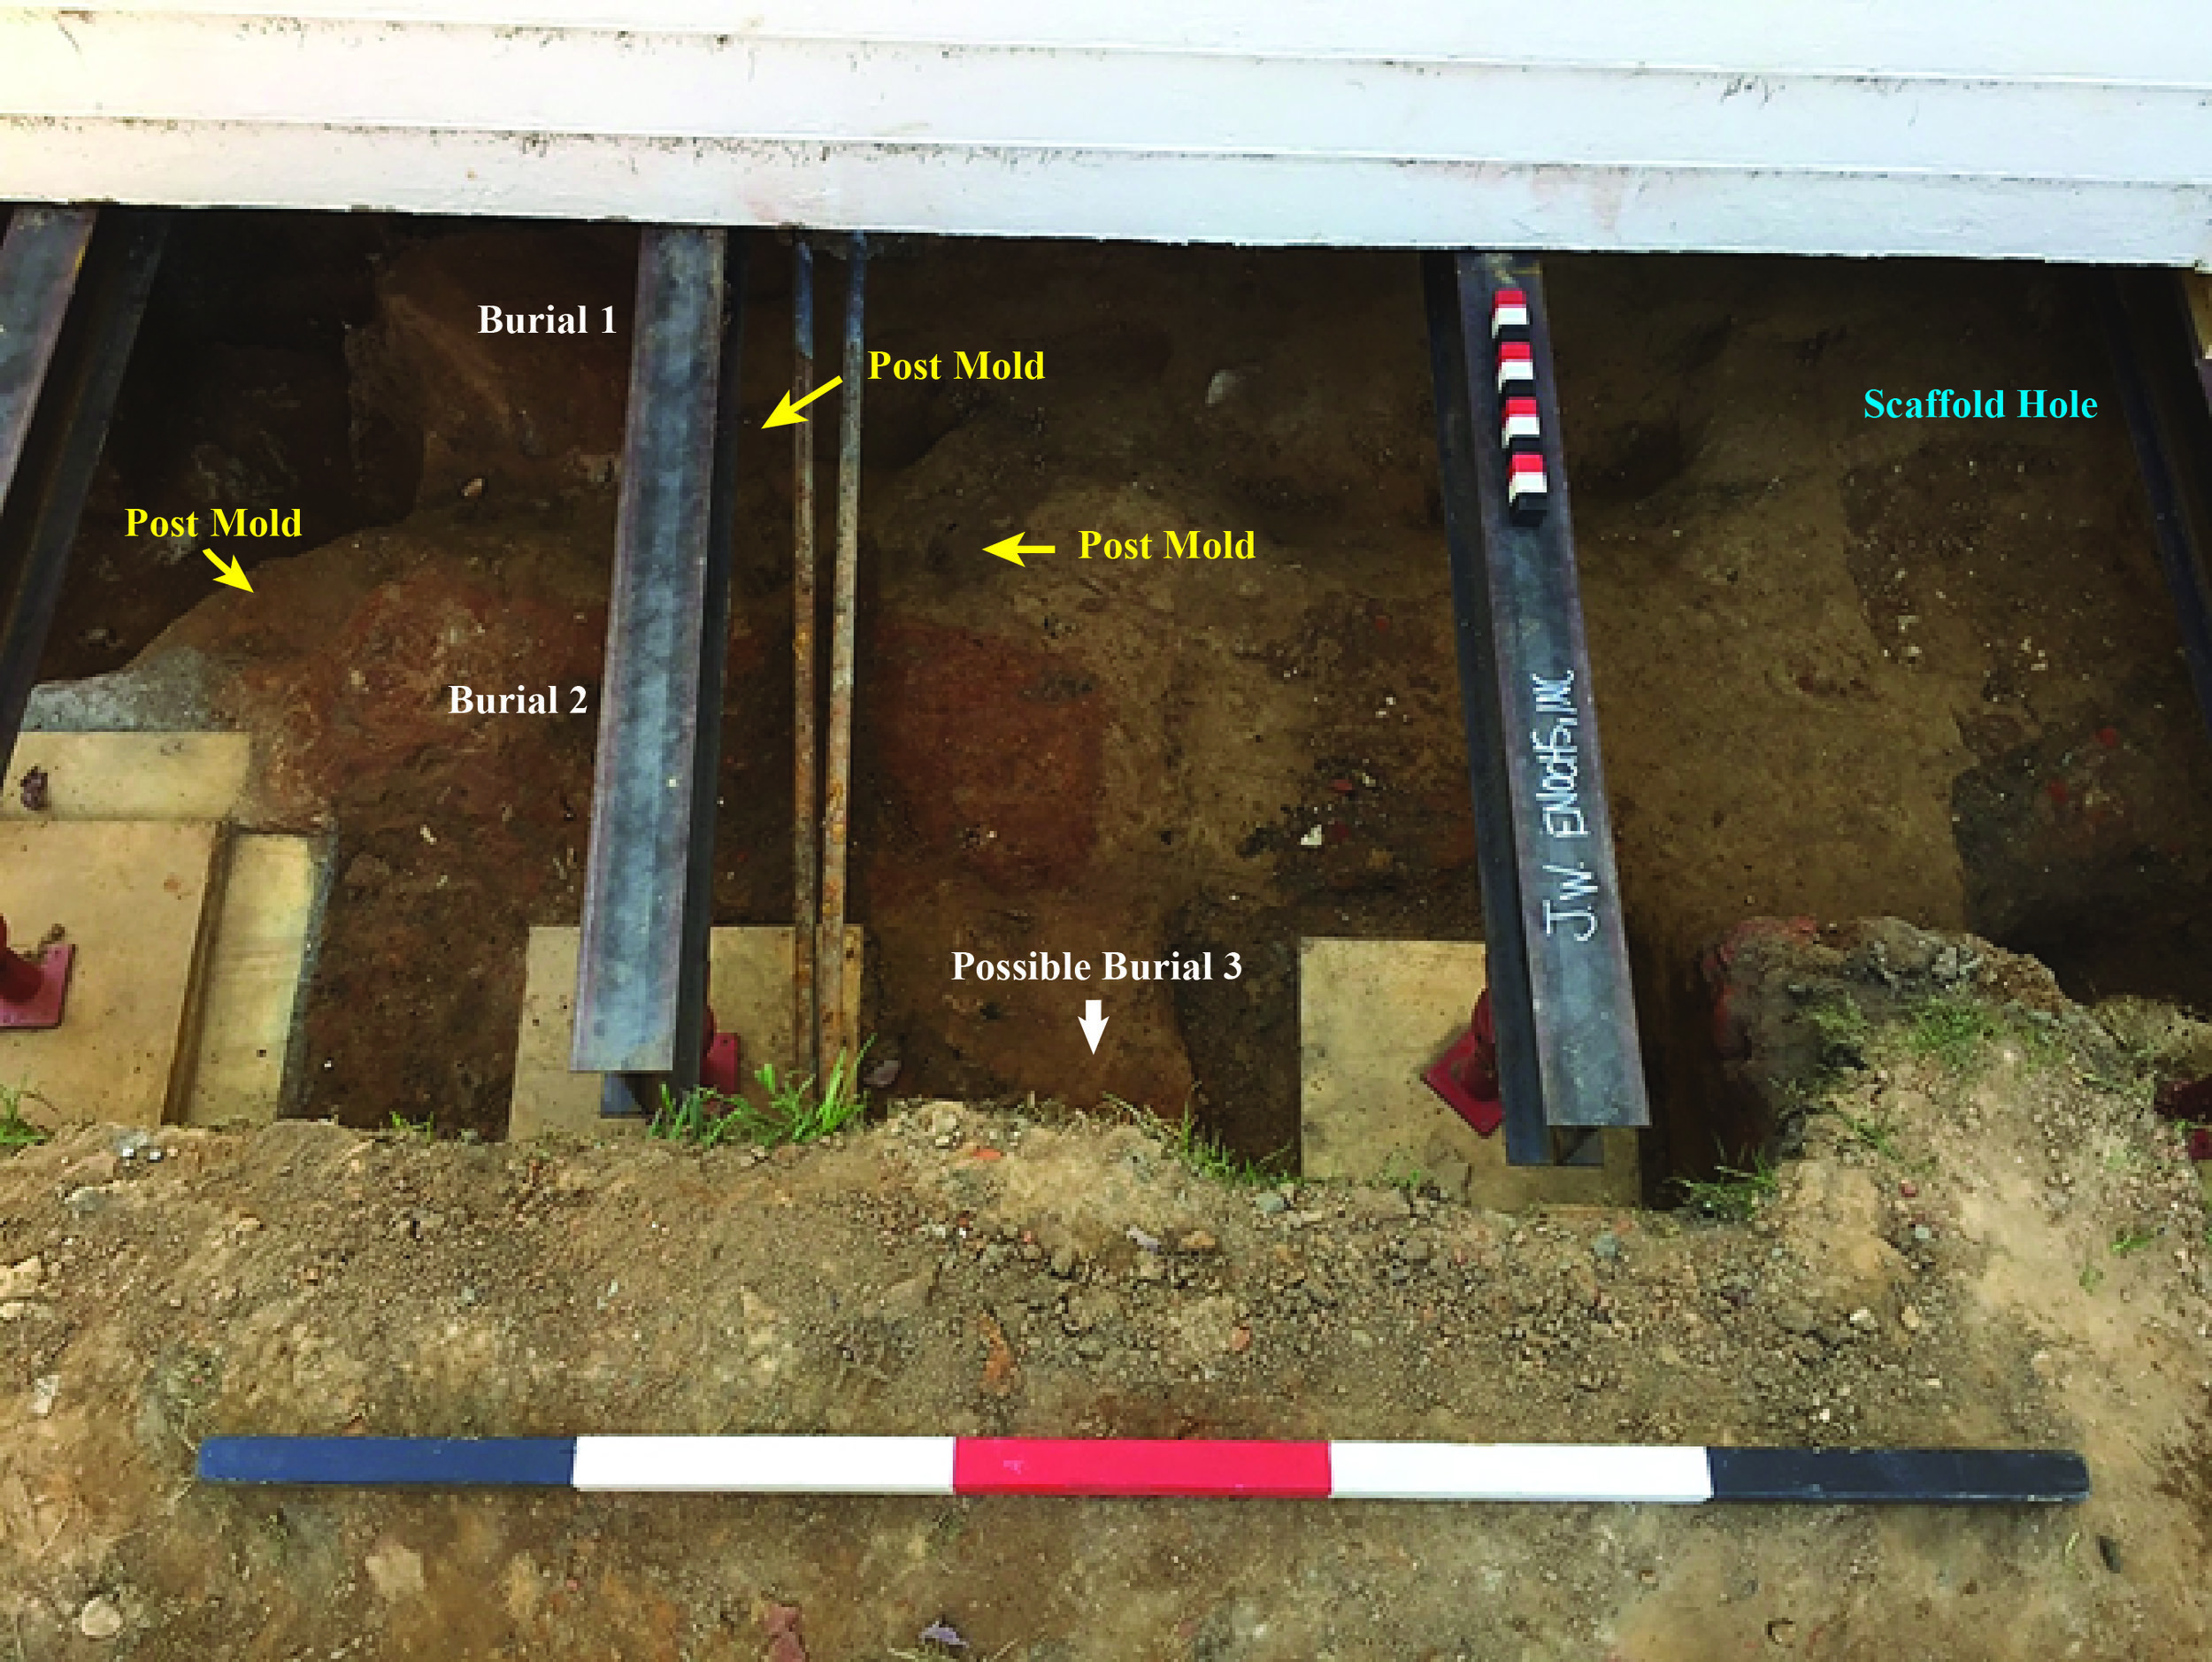 Photograph shows the placement of the burials and evidence of post holes. The position of the post alongside Burial 2 strongly suggests the grave was marked by a wooden grave rail.